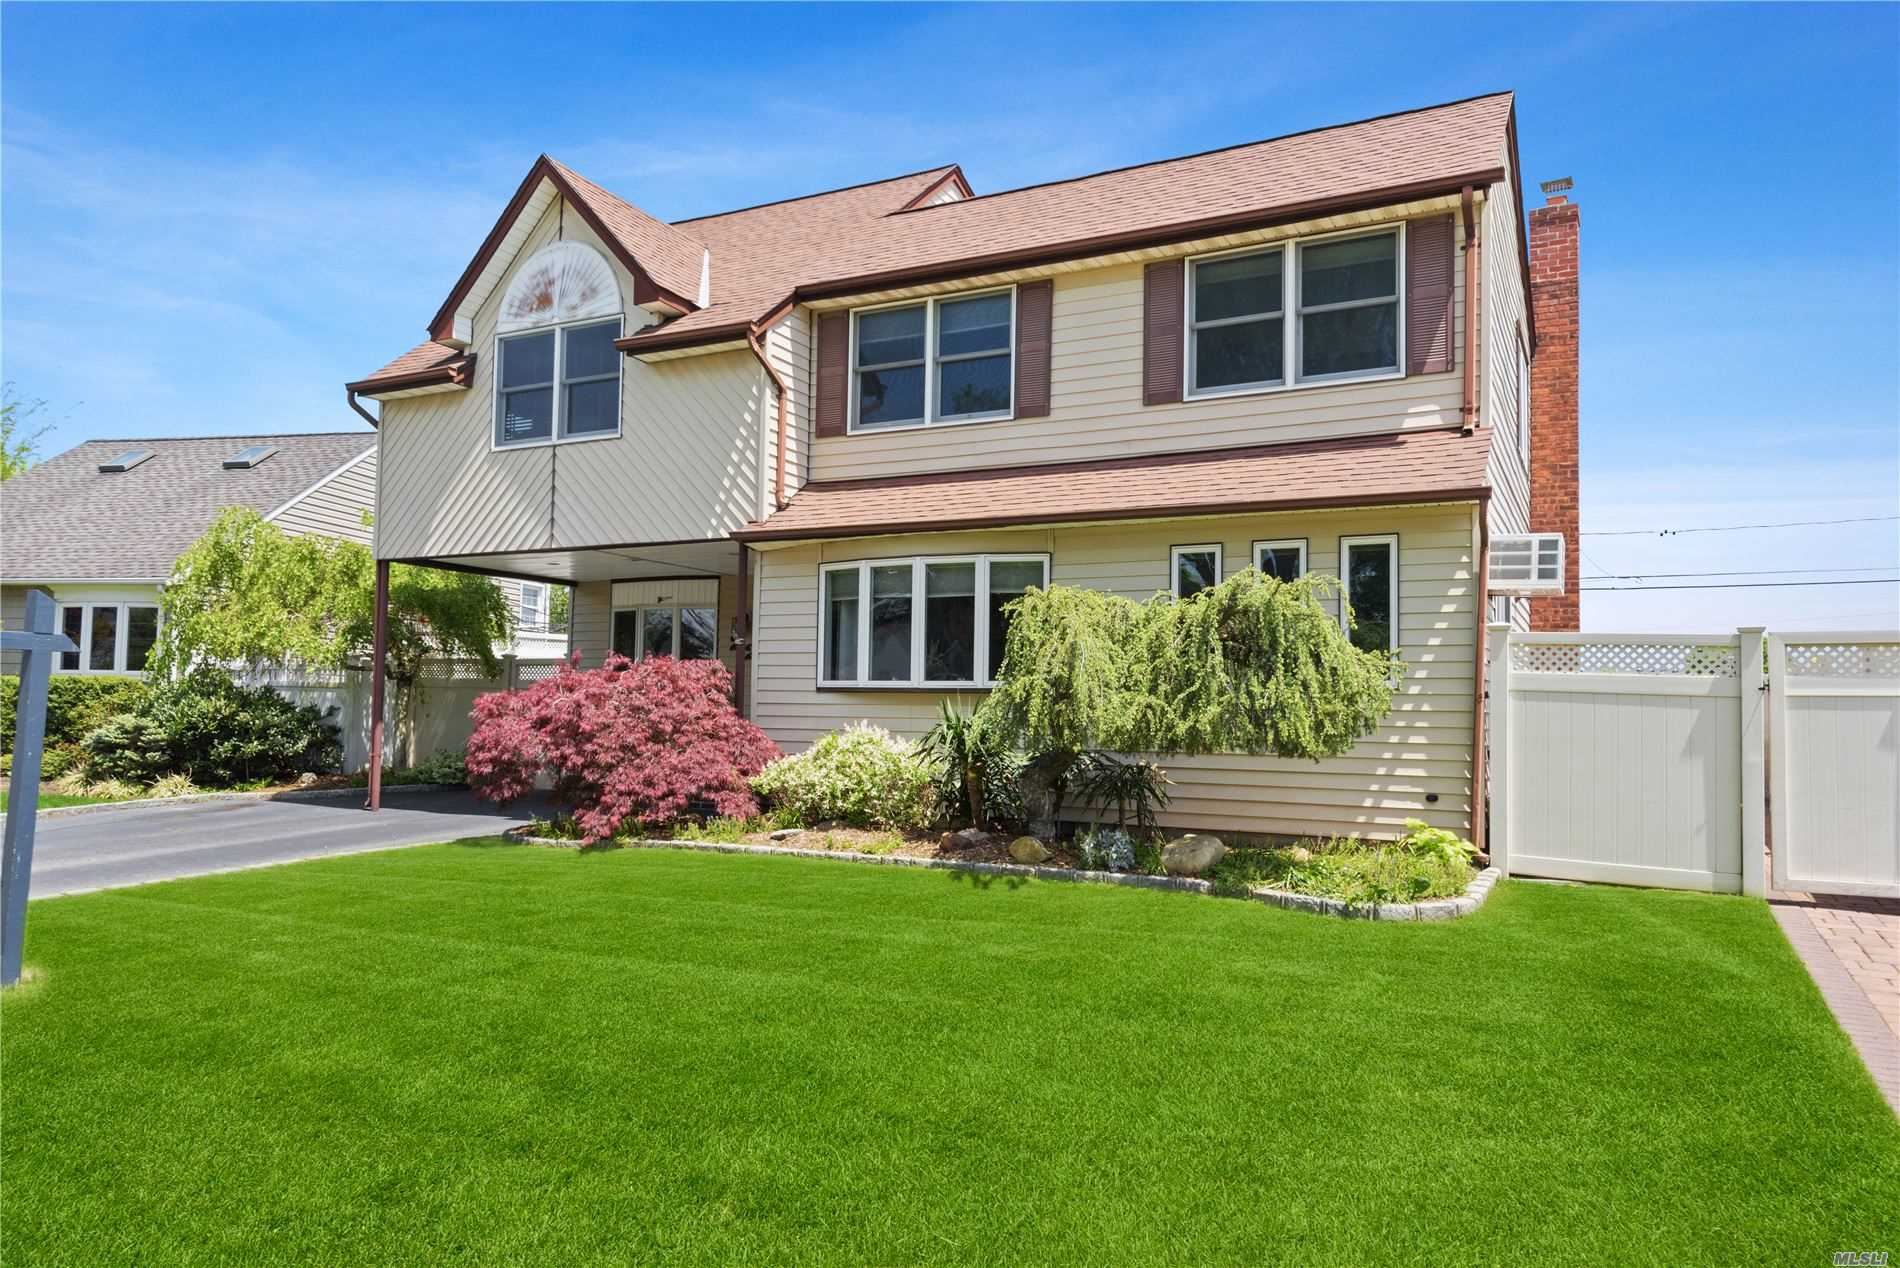 22 Ceil Place, Bethpage, NY 11714 - MLS#: 3207511